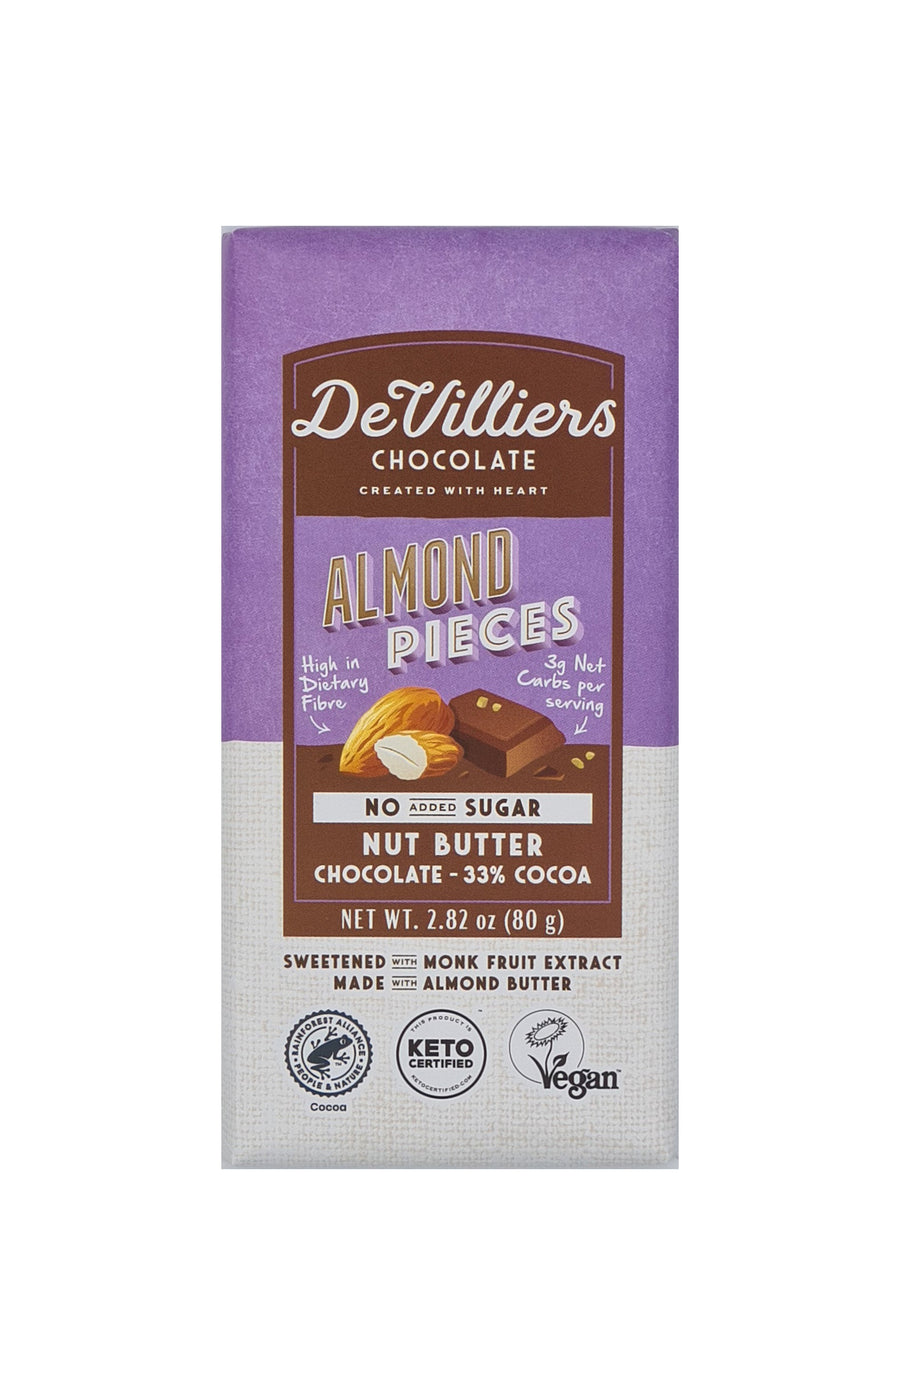 NO-ADDED-SUGAR NUT BUTTER BAR COMBINATION - PACK OF 6 BARS OF 2.82 OUNCE EACH - de villiers chocolate us